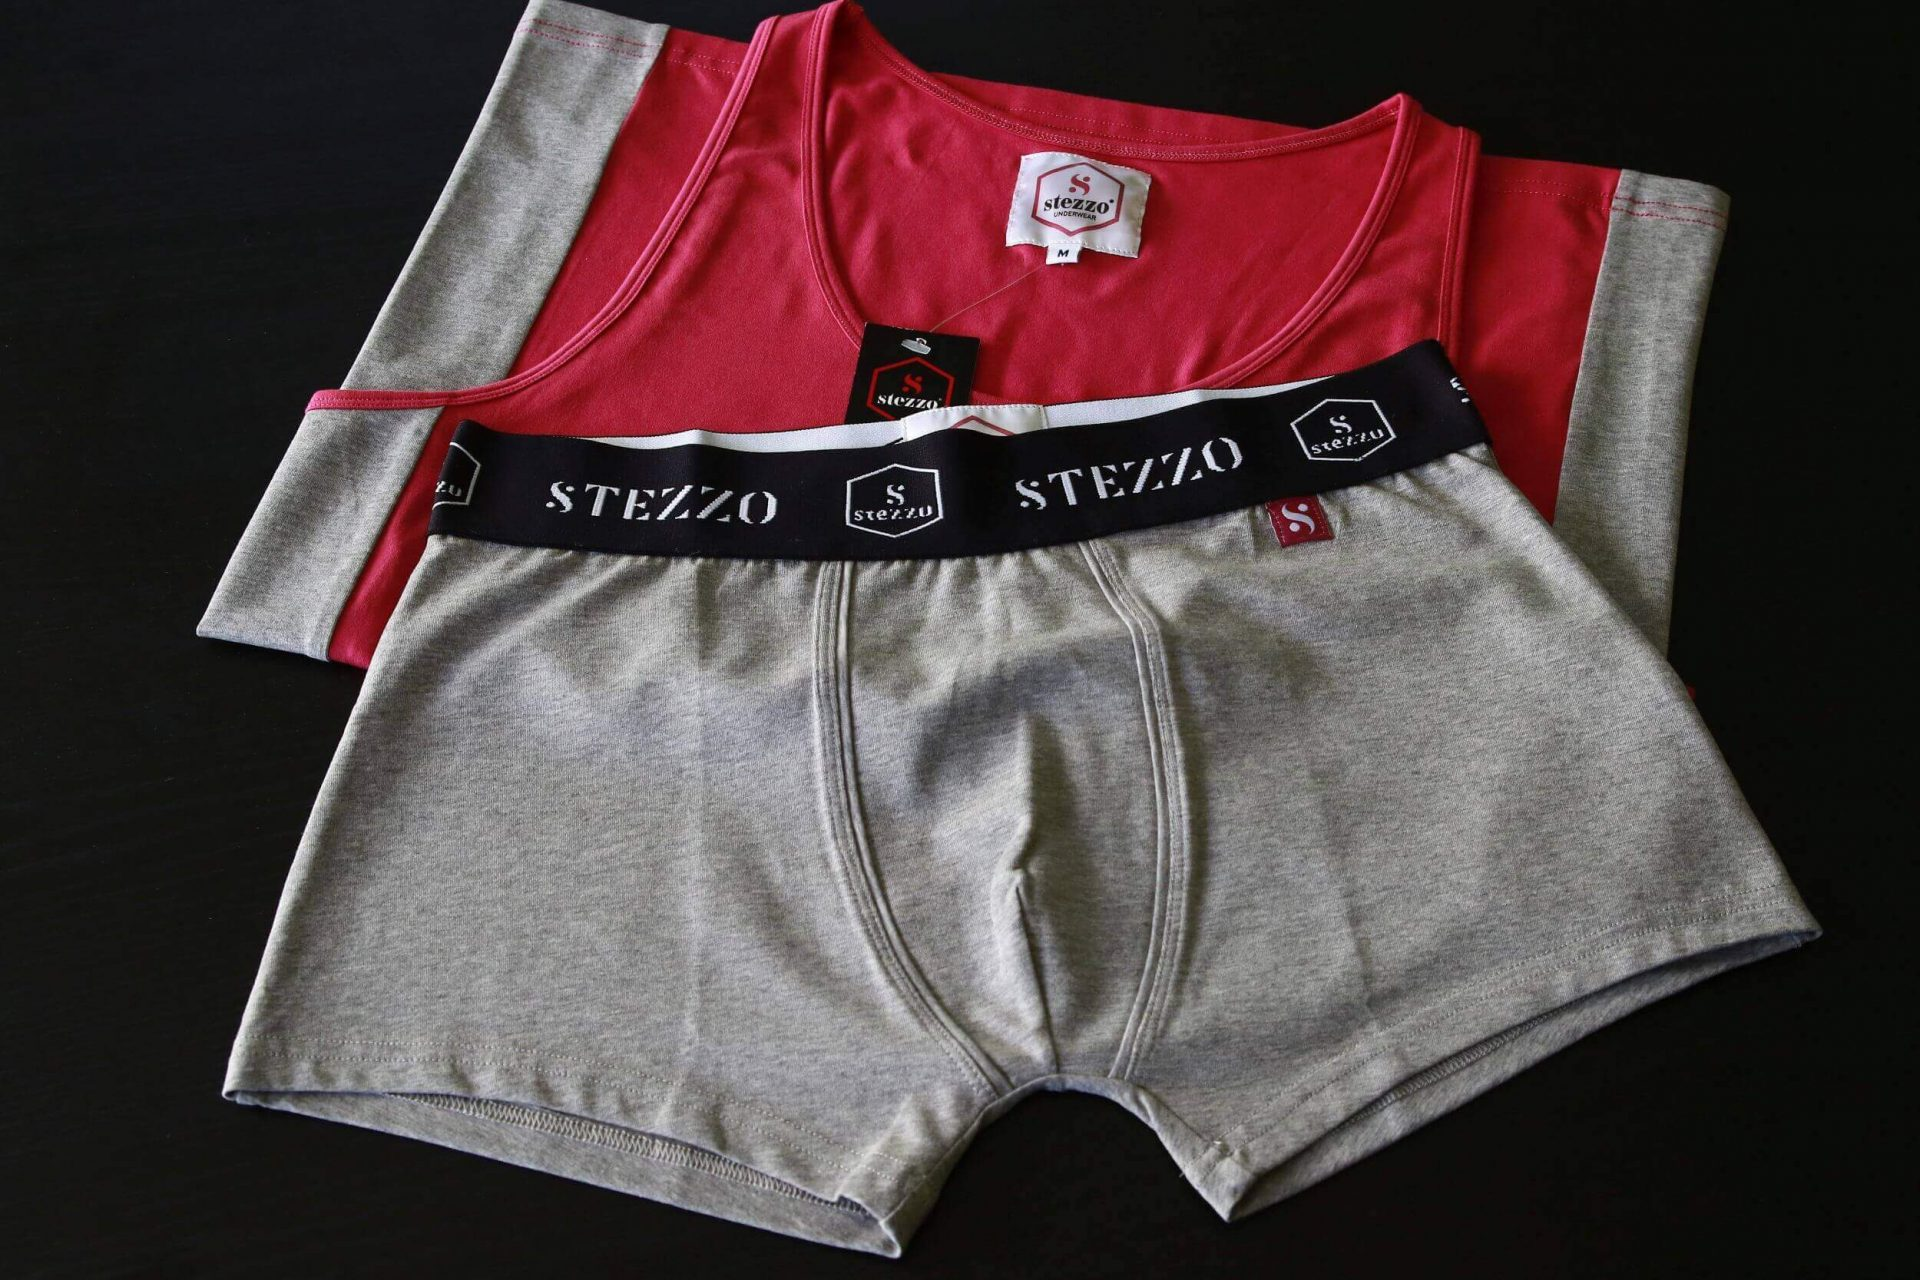 Pack-tank-top-boxer-underwear-collection-Stezzo-Vivere